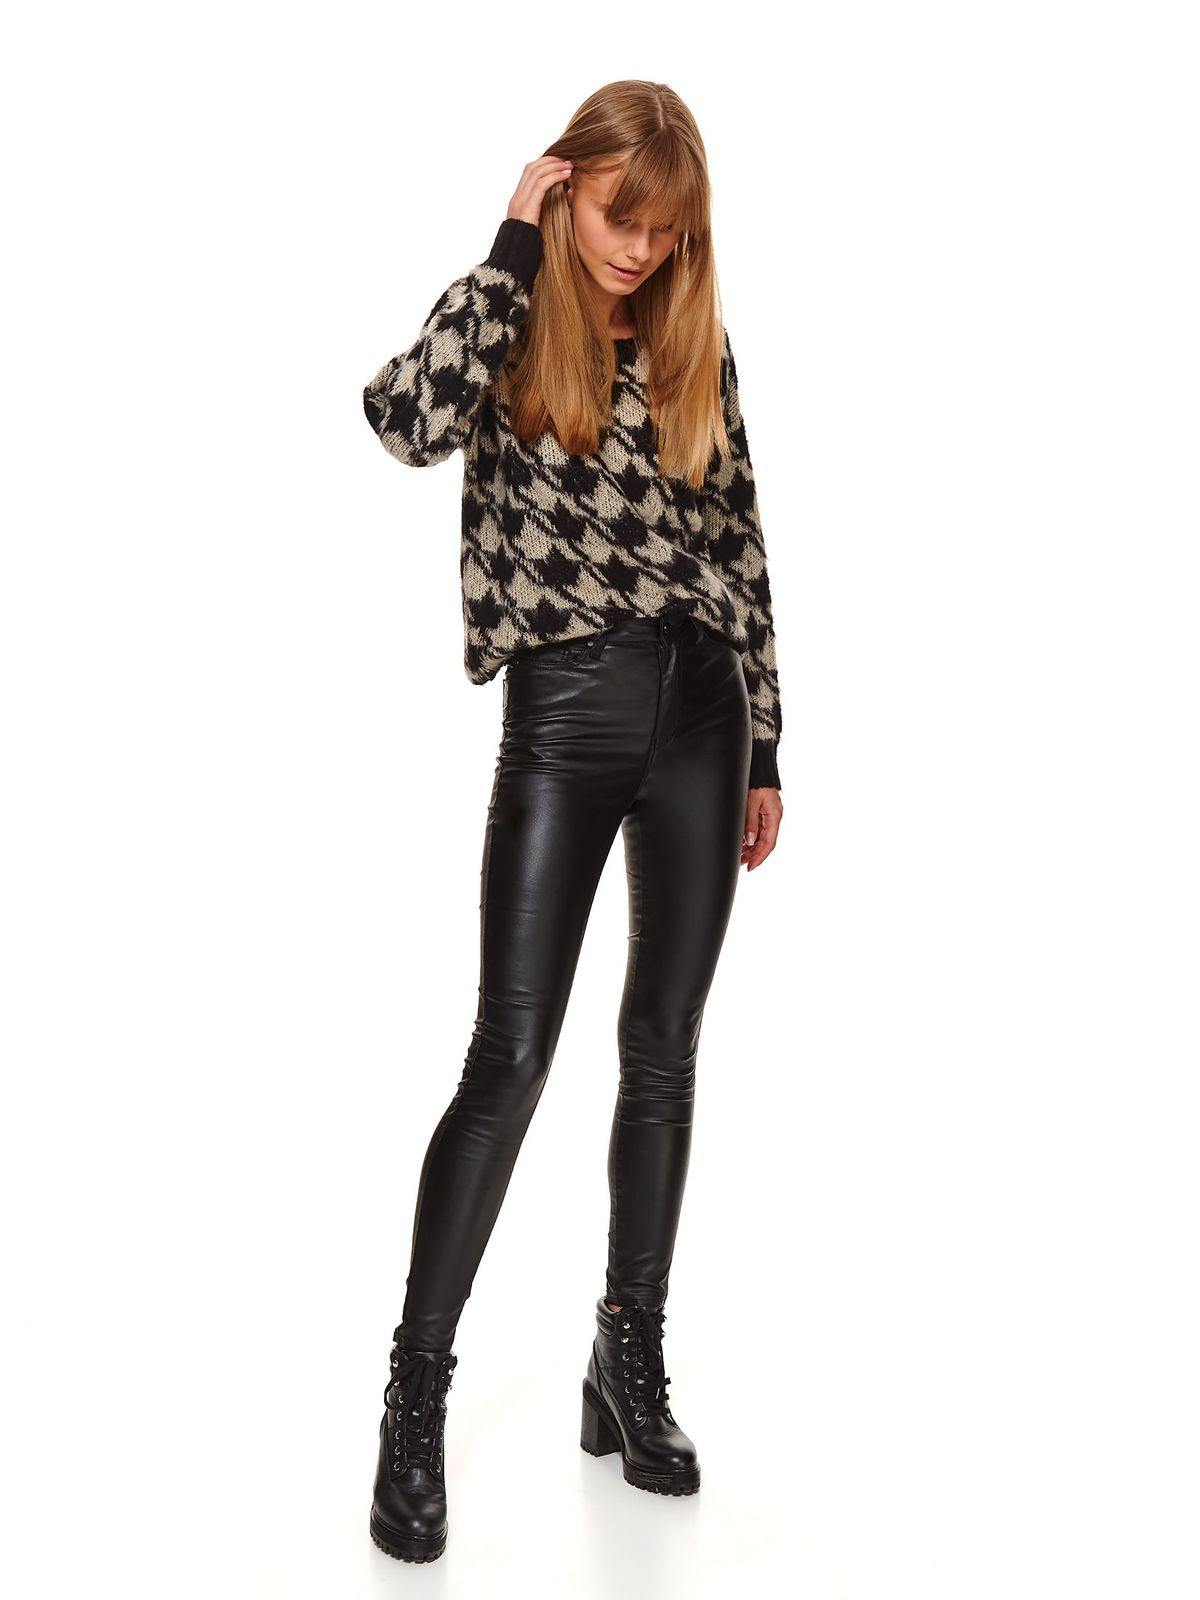 Black sweater casual with easy cut knitted fabric